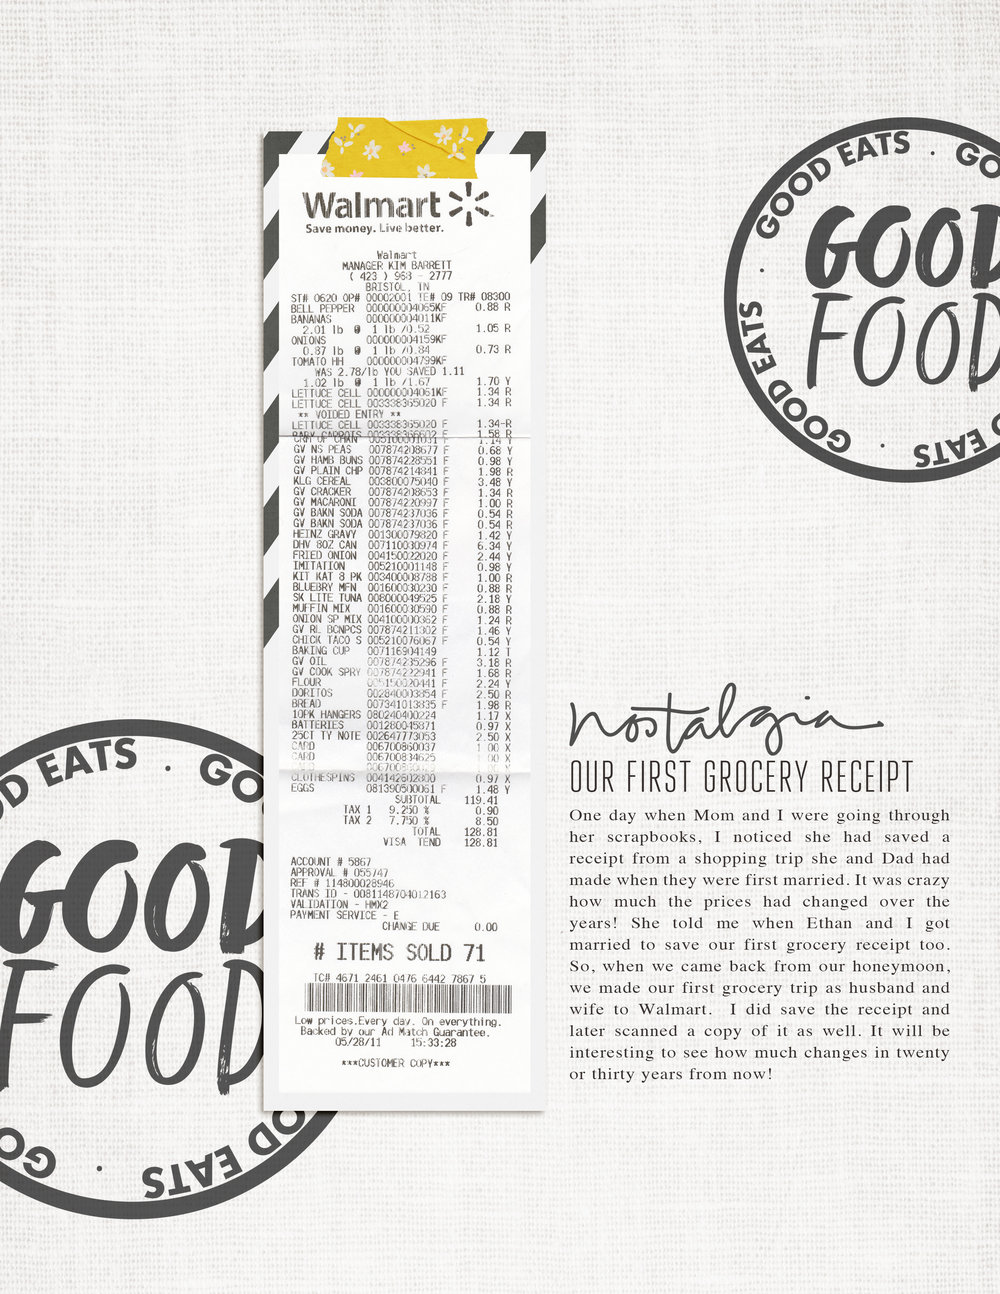 What's the craziest thing you've ever documented?  My mom encouraged me to save our first grocery receipt after my husband and I got married. I loved creating this digital scrapbook page with a scanned copy of the receipt - preserved forever! This fun page uses the  Good Food  digital stamp set from Kellie Stamps.